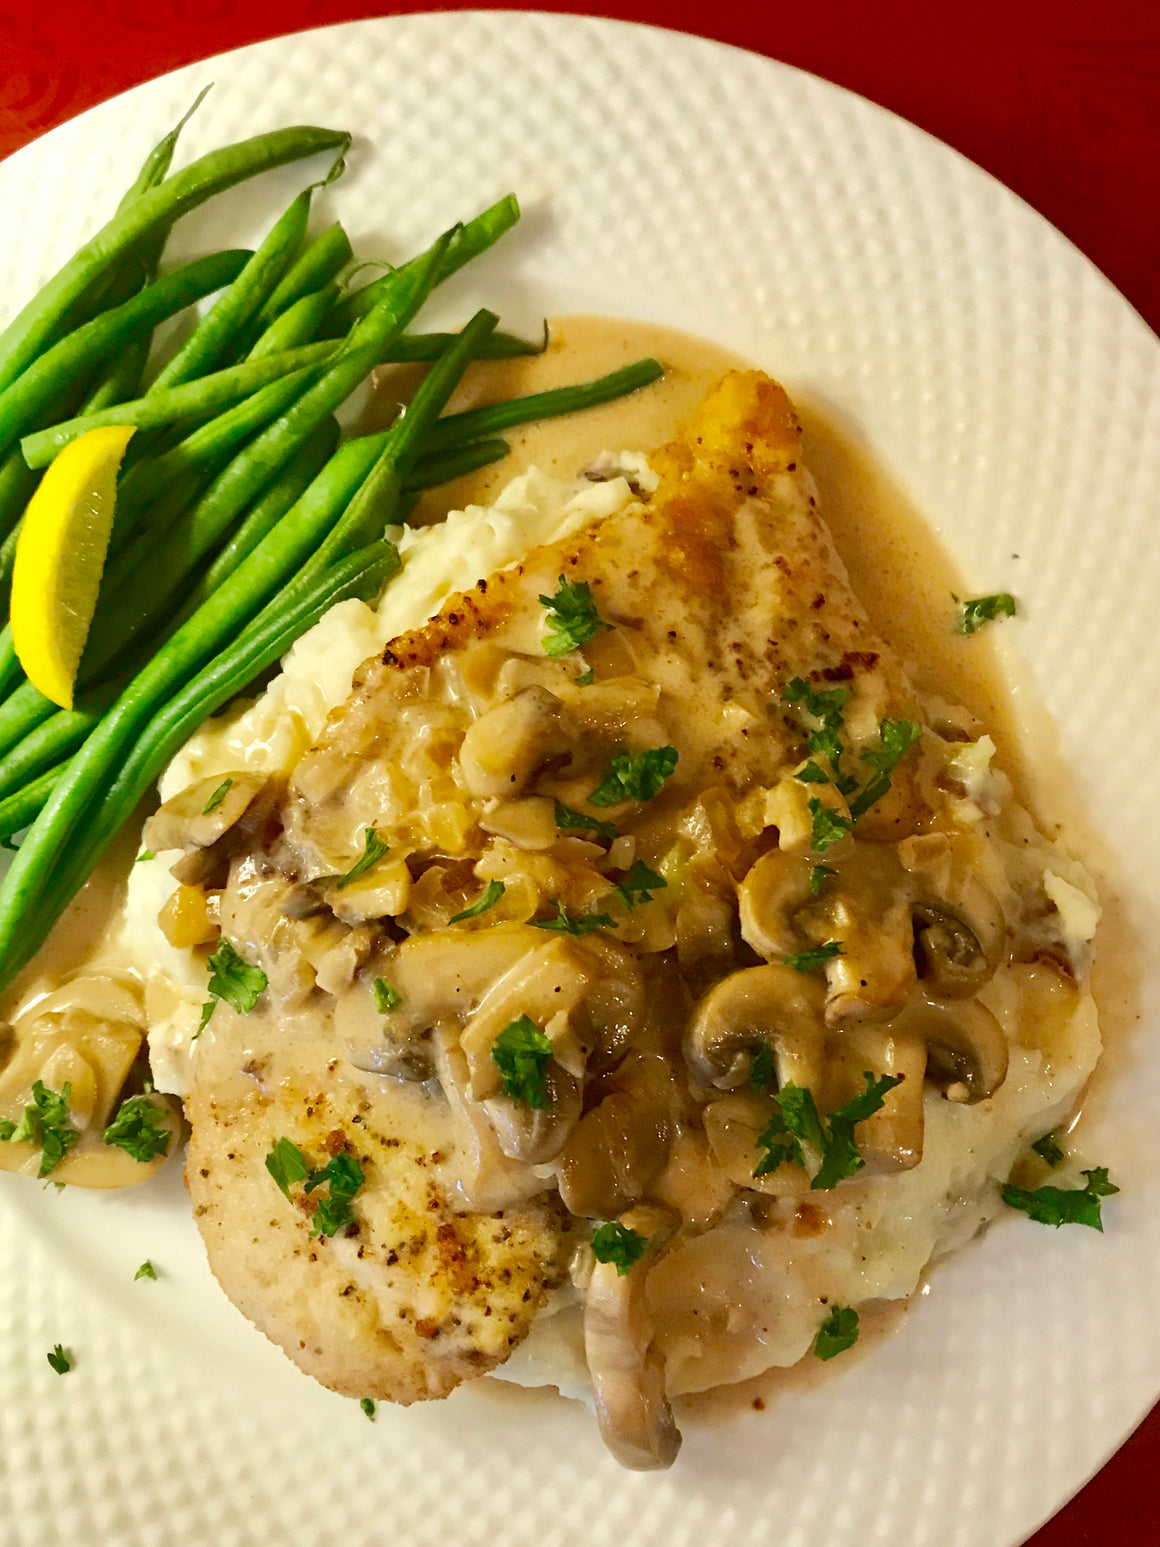 Tuesday, October 30th:  Chicken Marsala